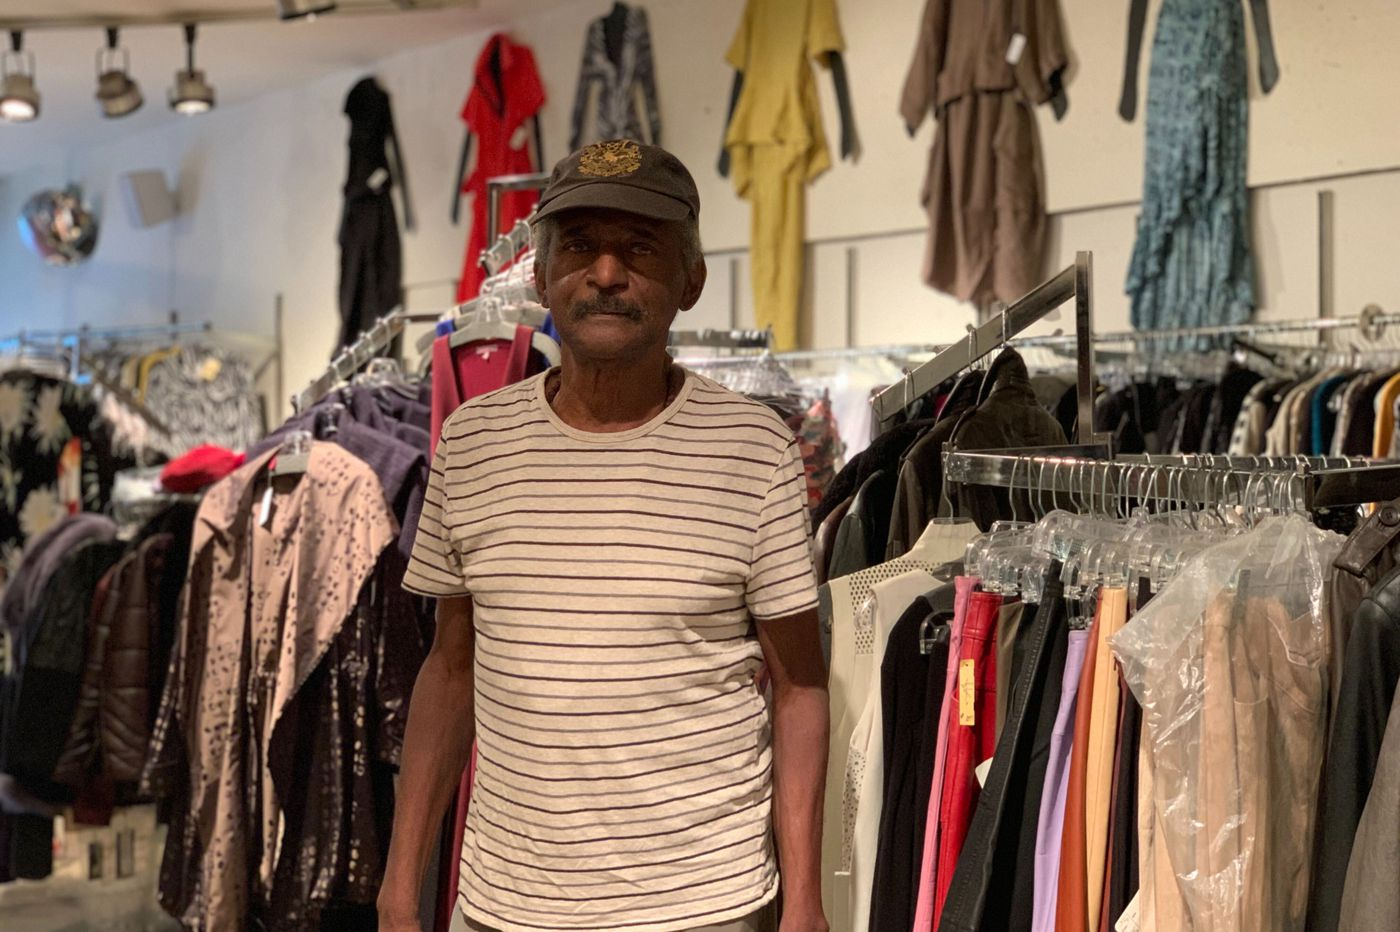 In the aftermath of damage and theft, worried and weary business owners take stock